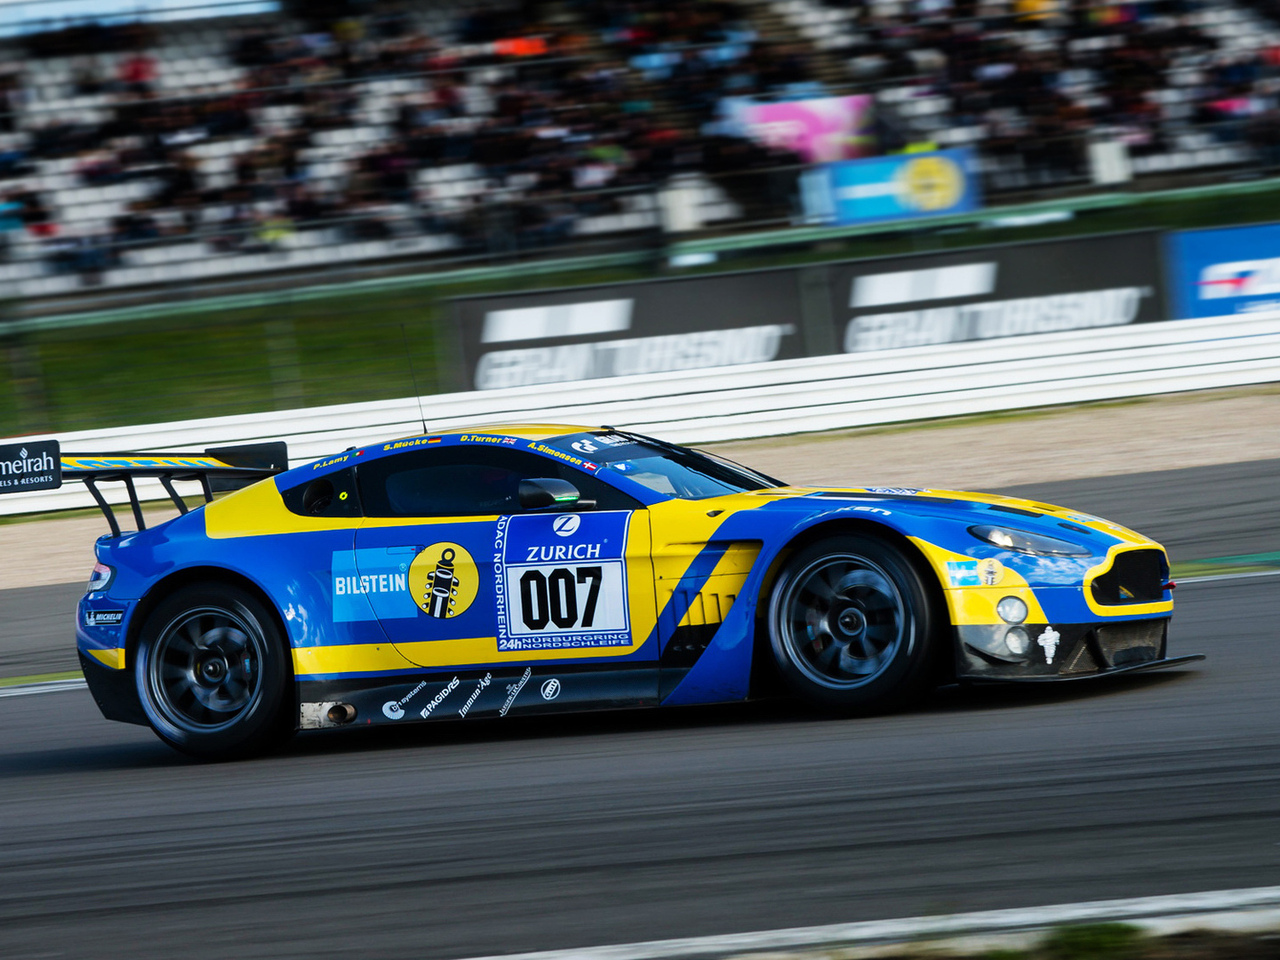 race car, aston martin v12 vantage gt3, autowallpaper, астон мартин